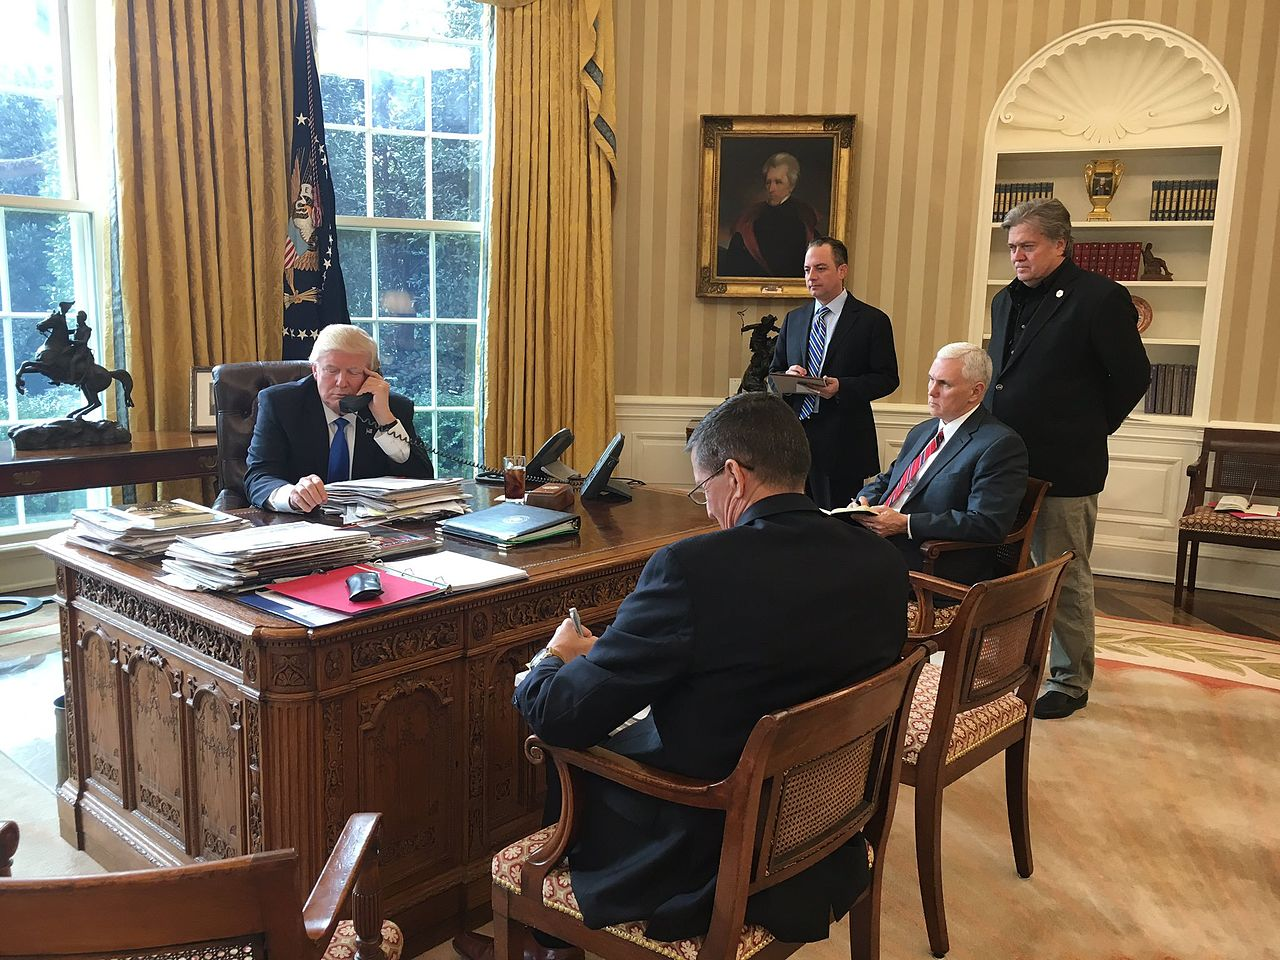 Trump speaking with Putin, Oval Office, photo Sean Spicer, White House press secretary